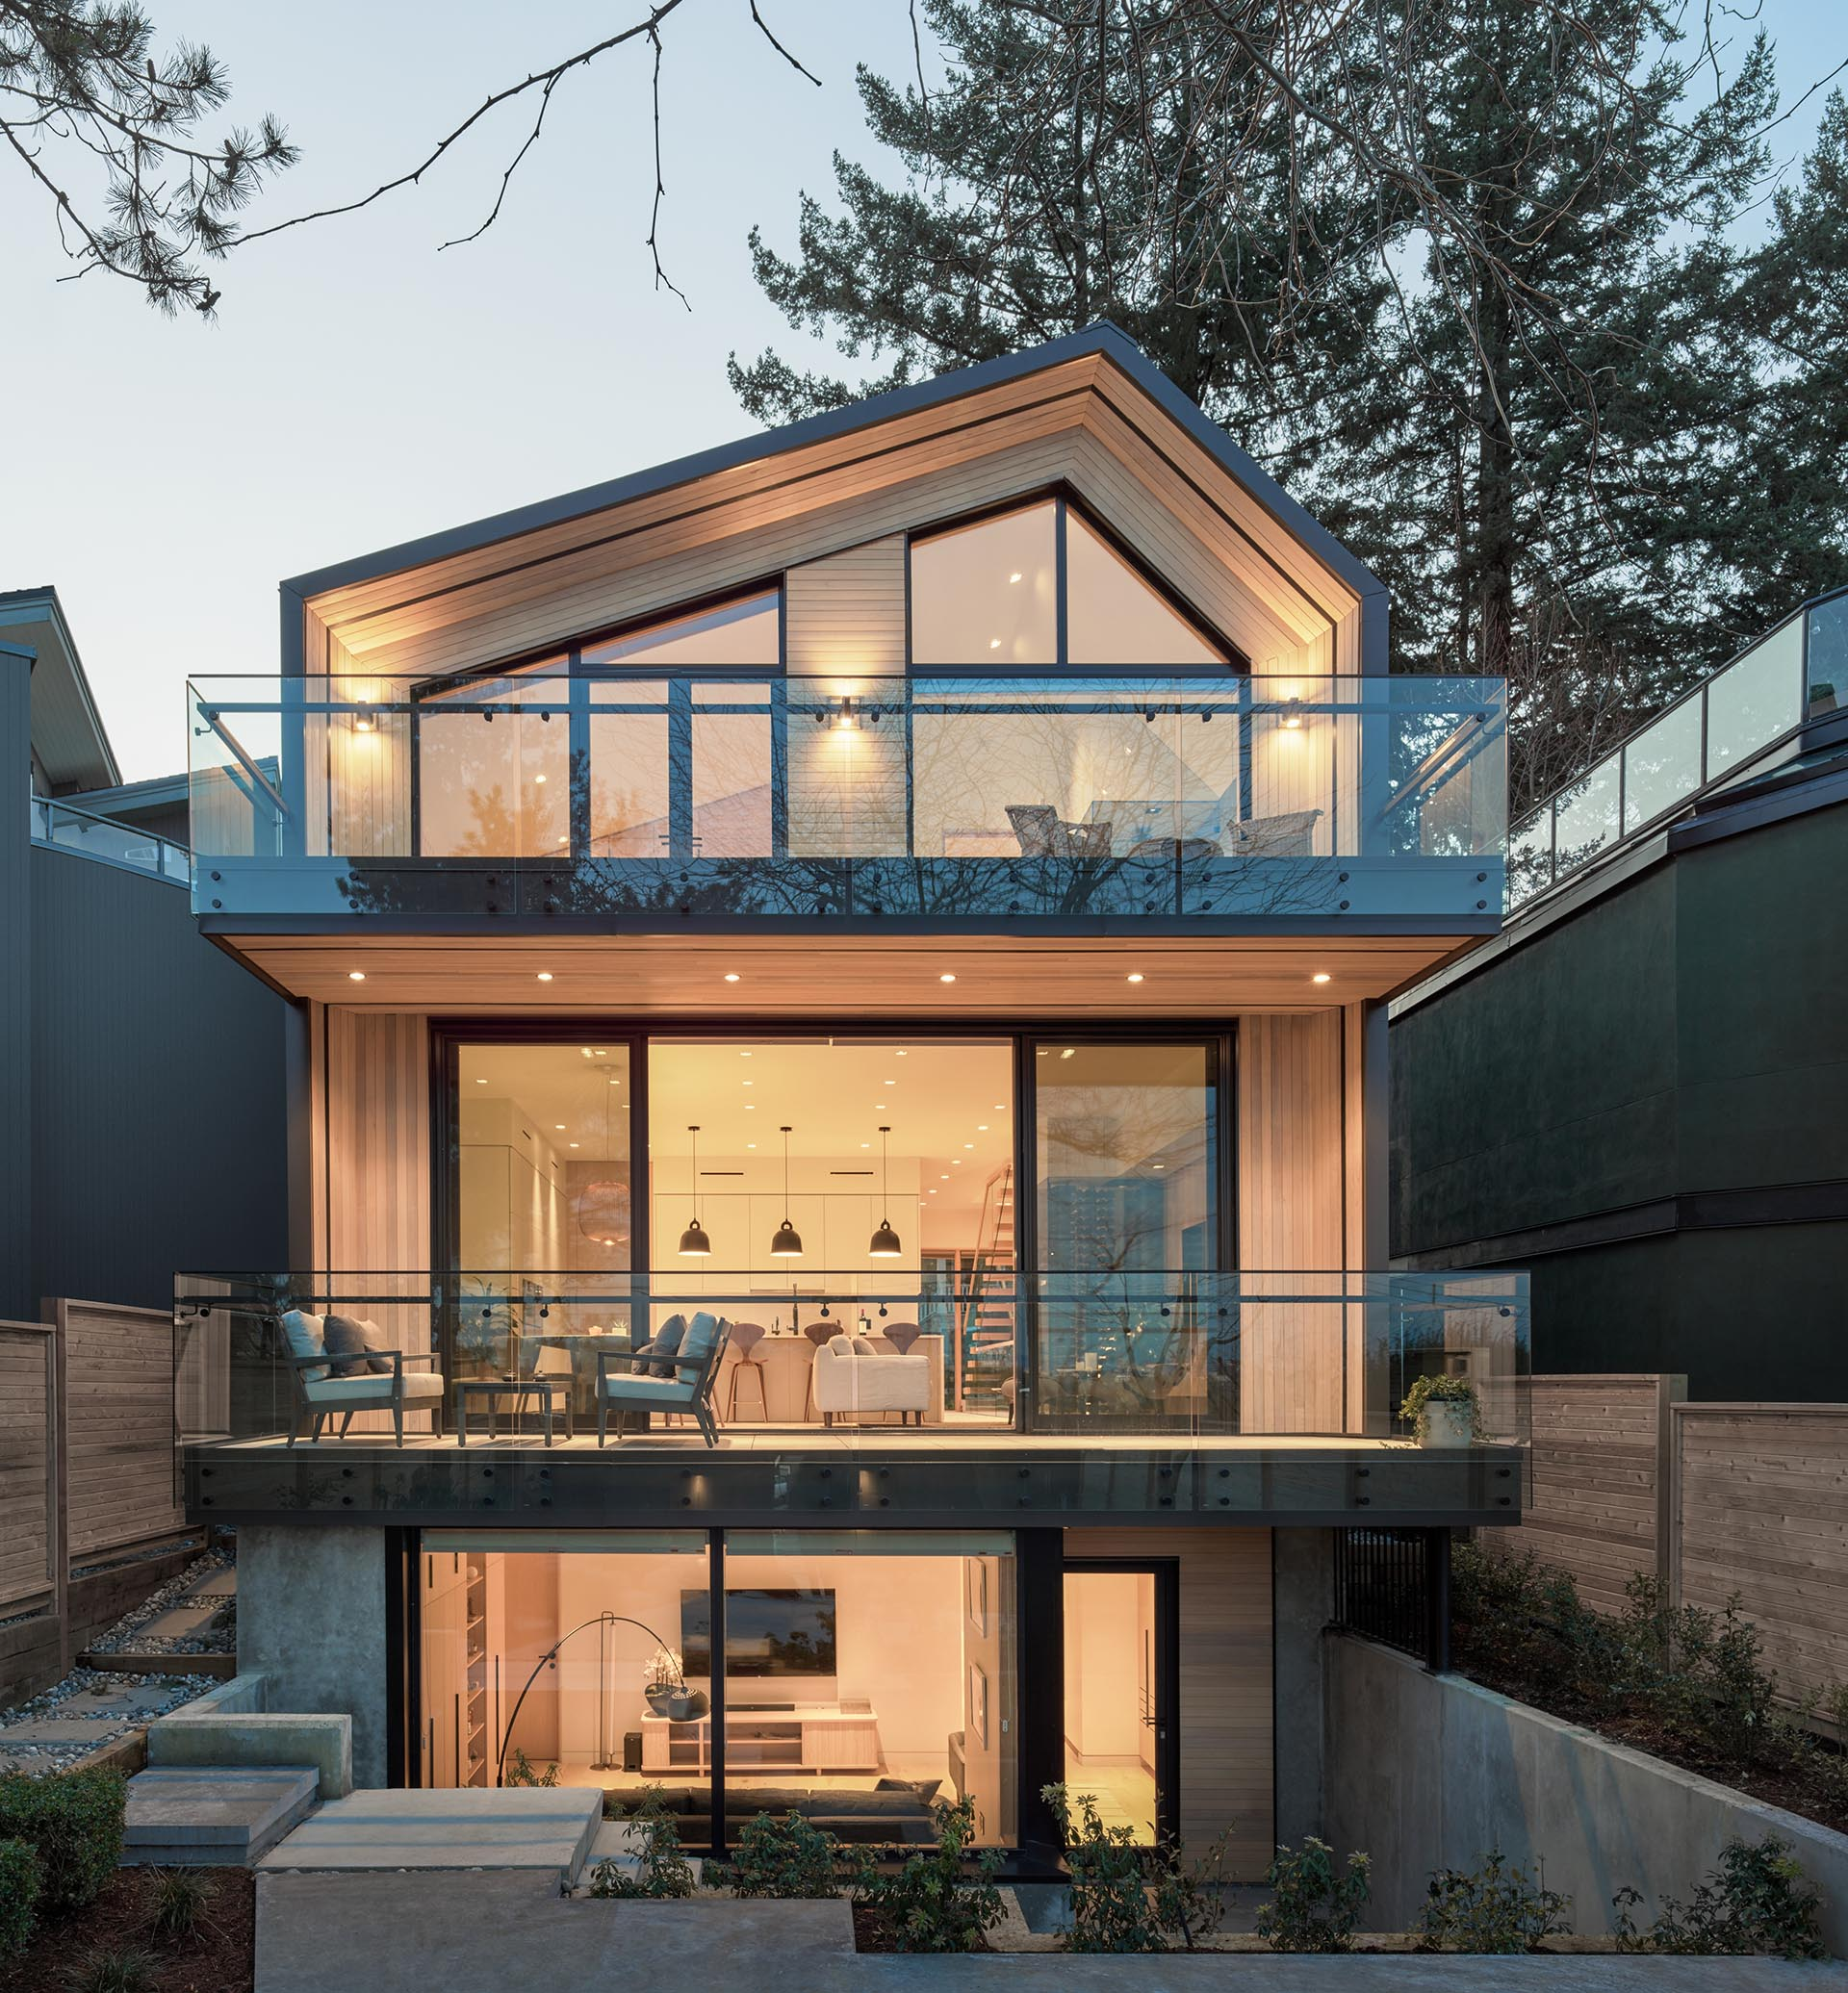 Cedar, black metal, and glass are used to create a contemporary house design.